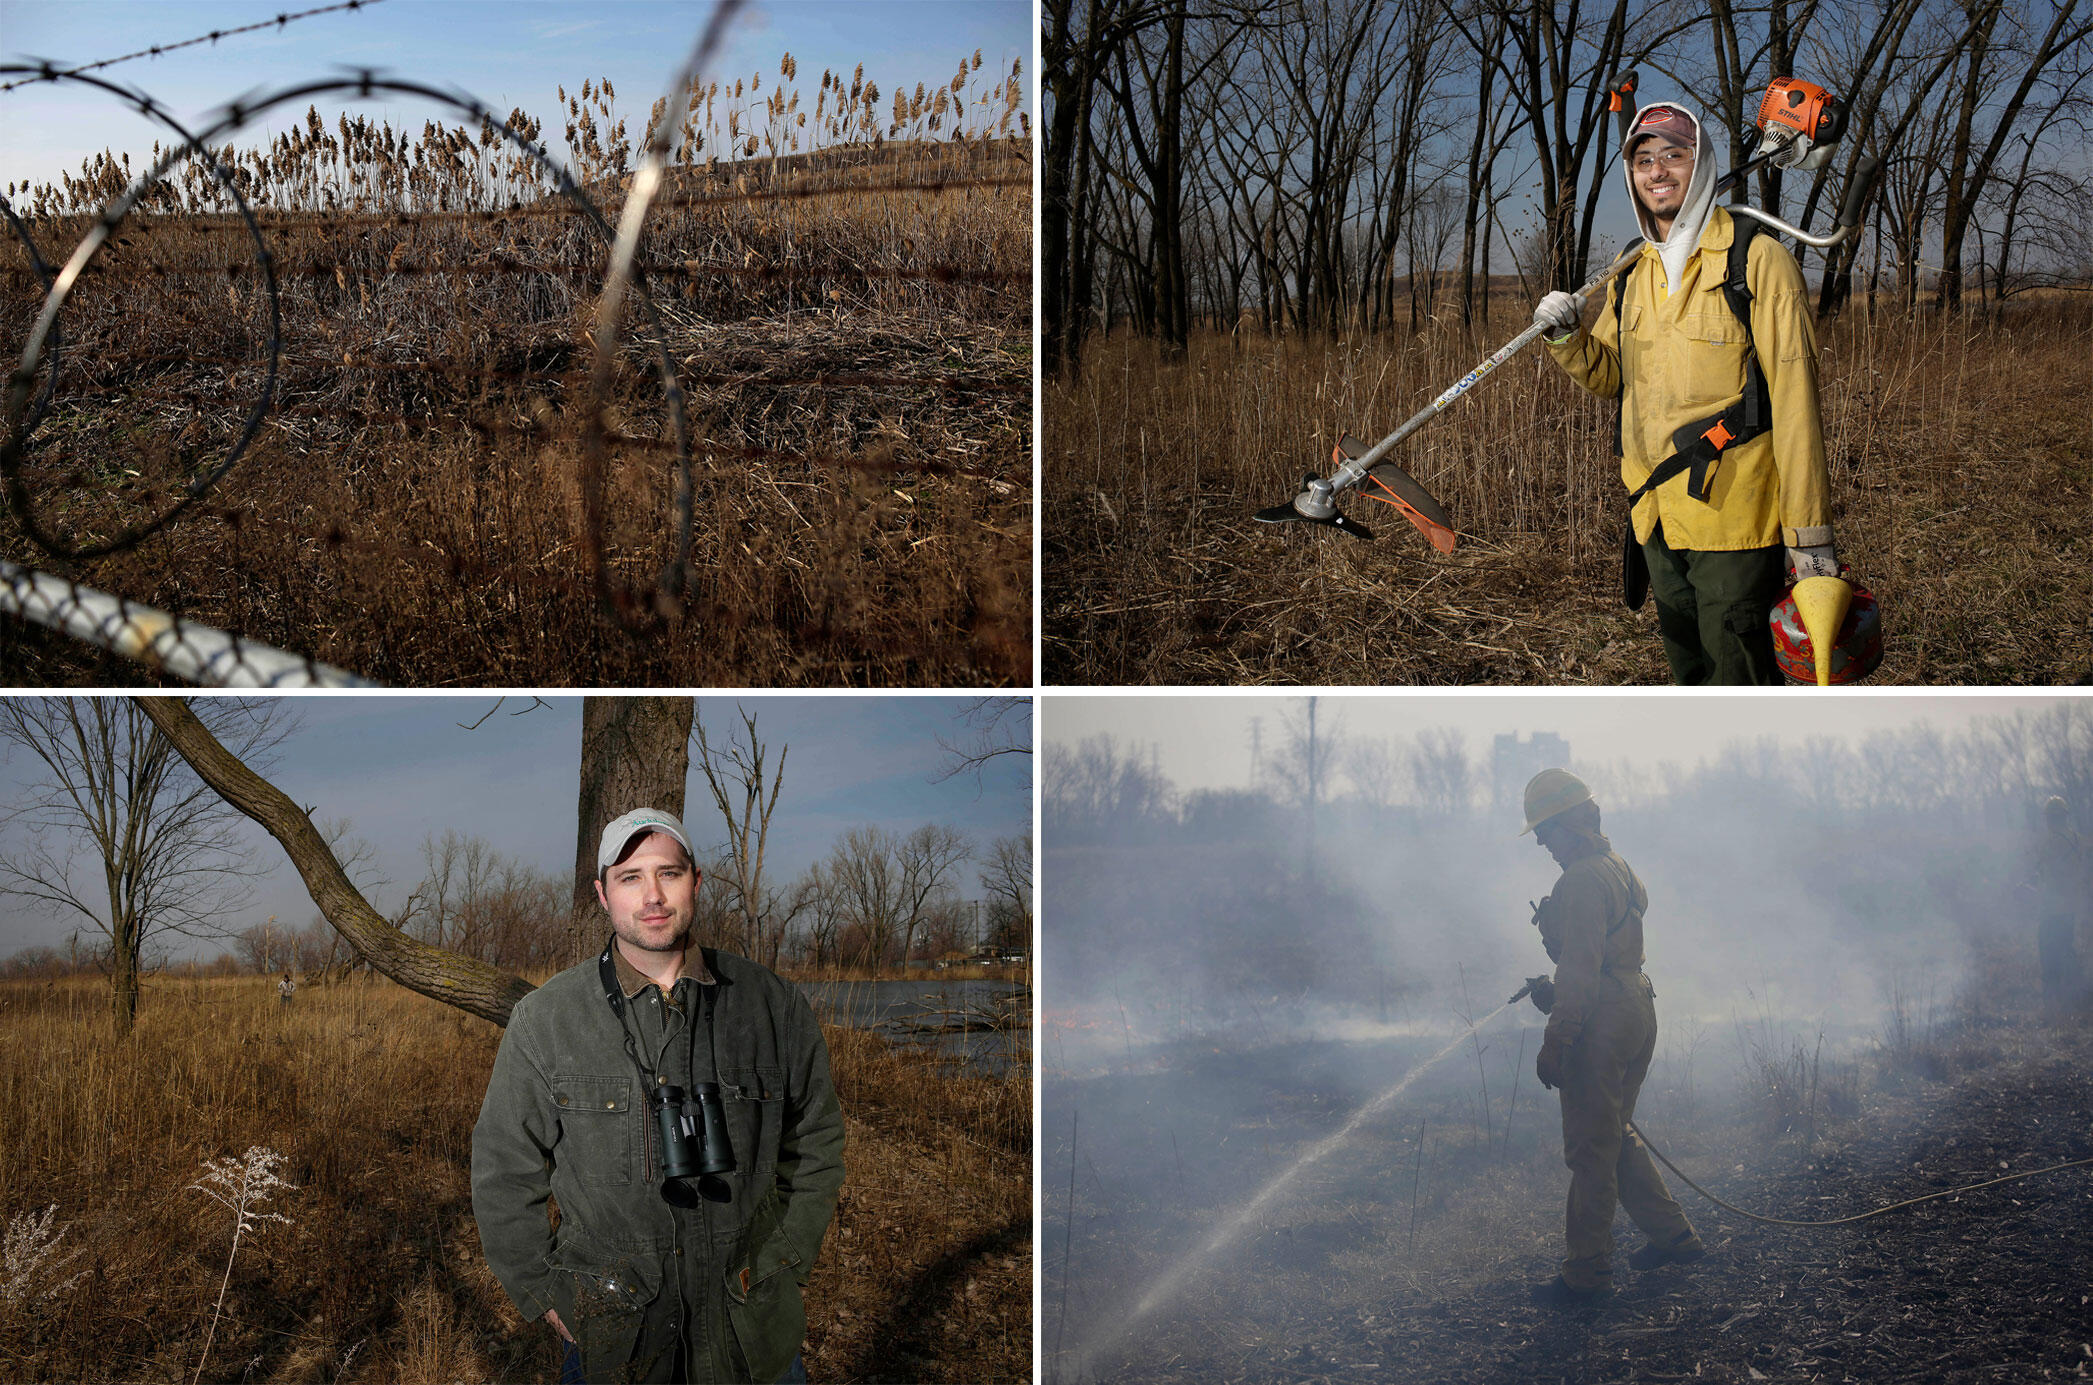 Clockwise from top left: Phragmites; Juan Rosales of the fire crew; worker puts out a hot spot; Nat Miller of Audubon Great Lakes. Photos: Joshua Lott